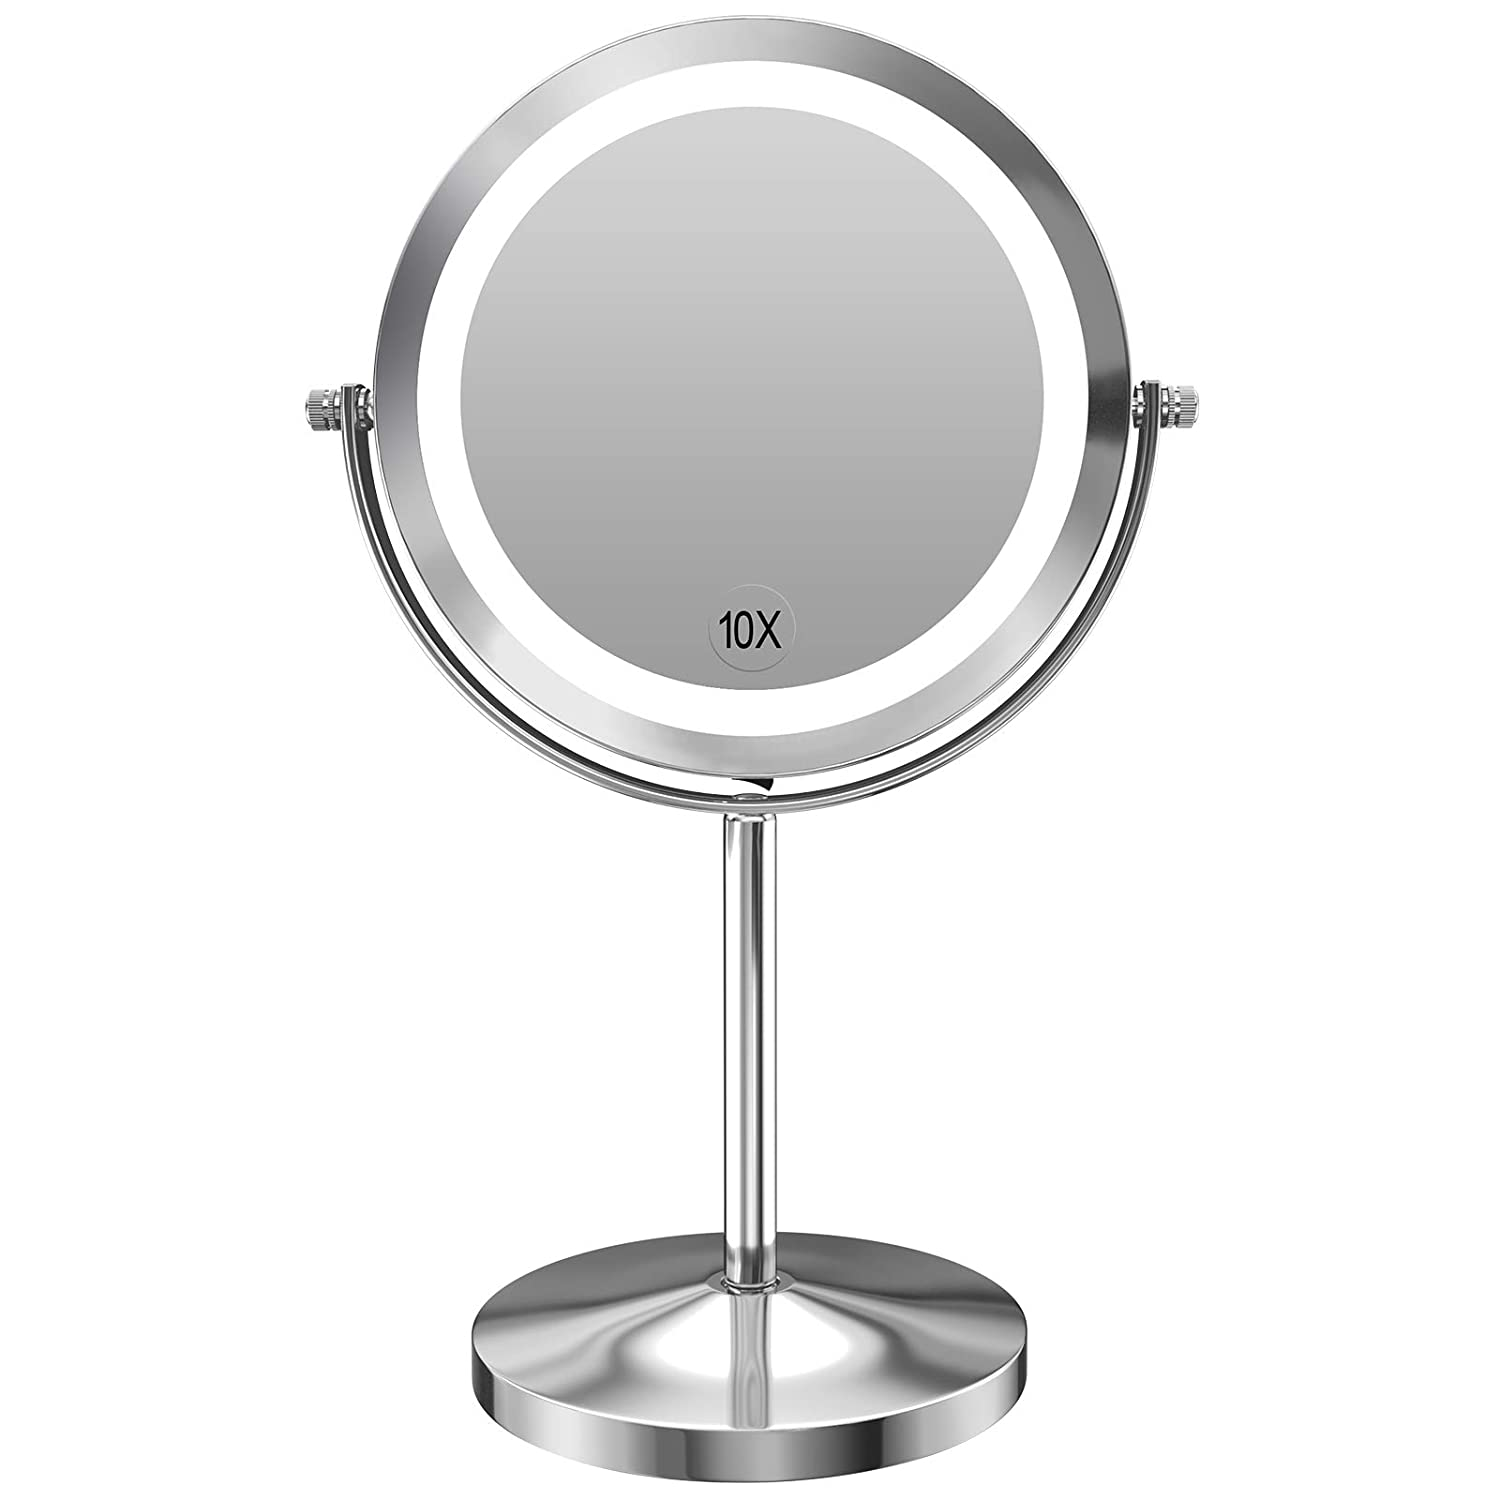 Gospire 10x Magnified Lighted Makeup Mirror